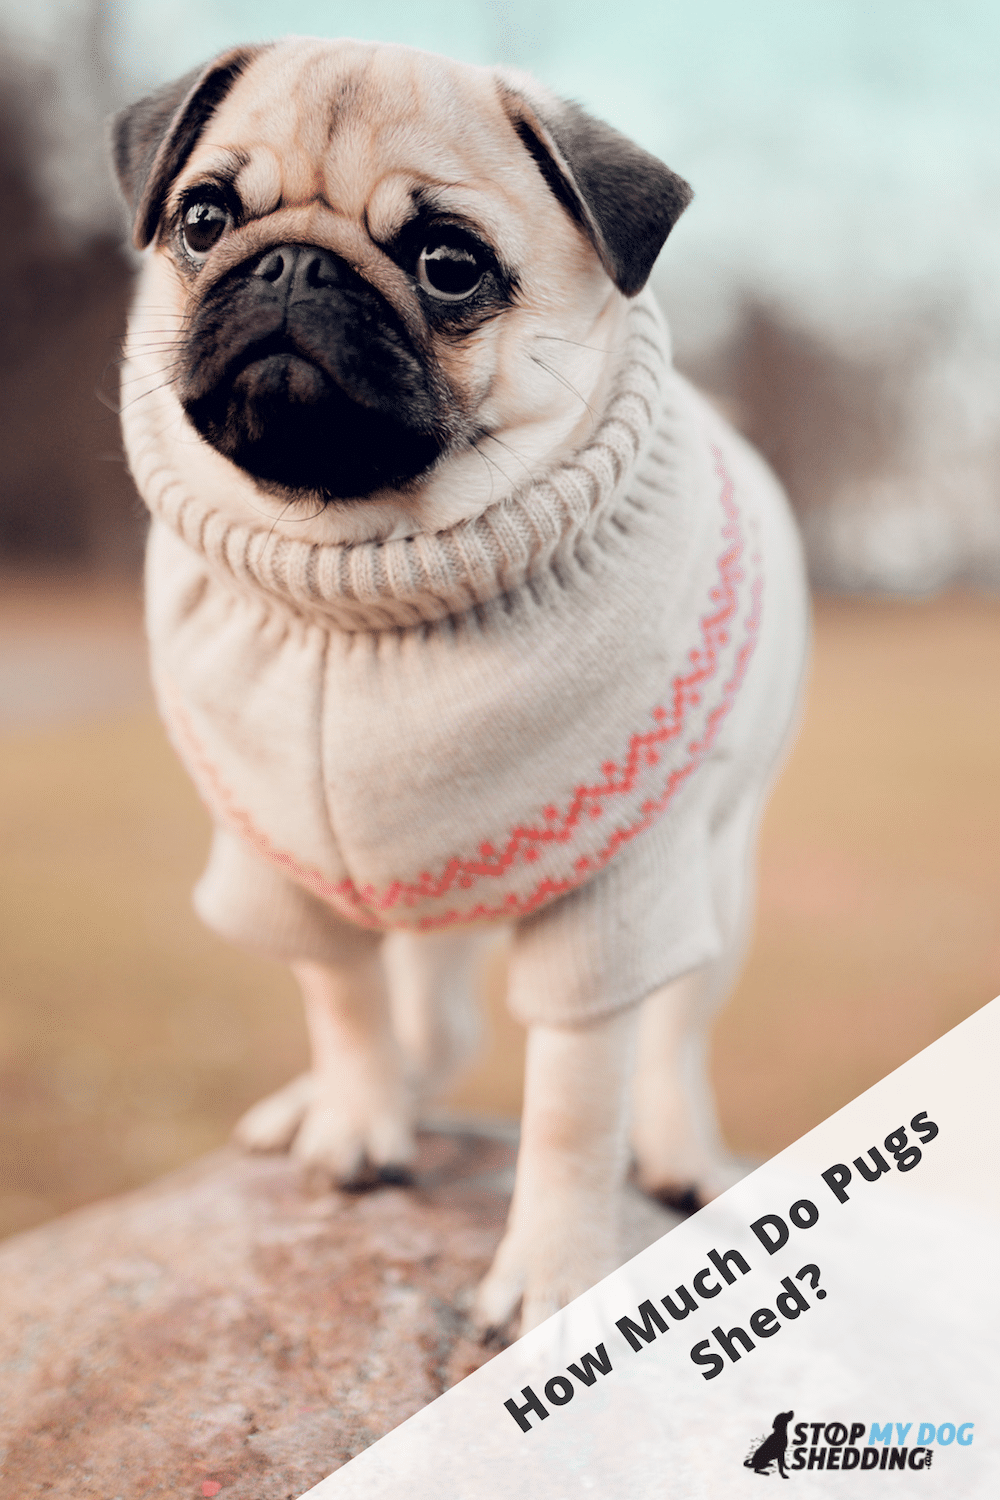 Do Pugs Shed Much? (Helpful Guide to Pug Shedding)